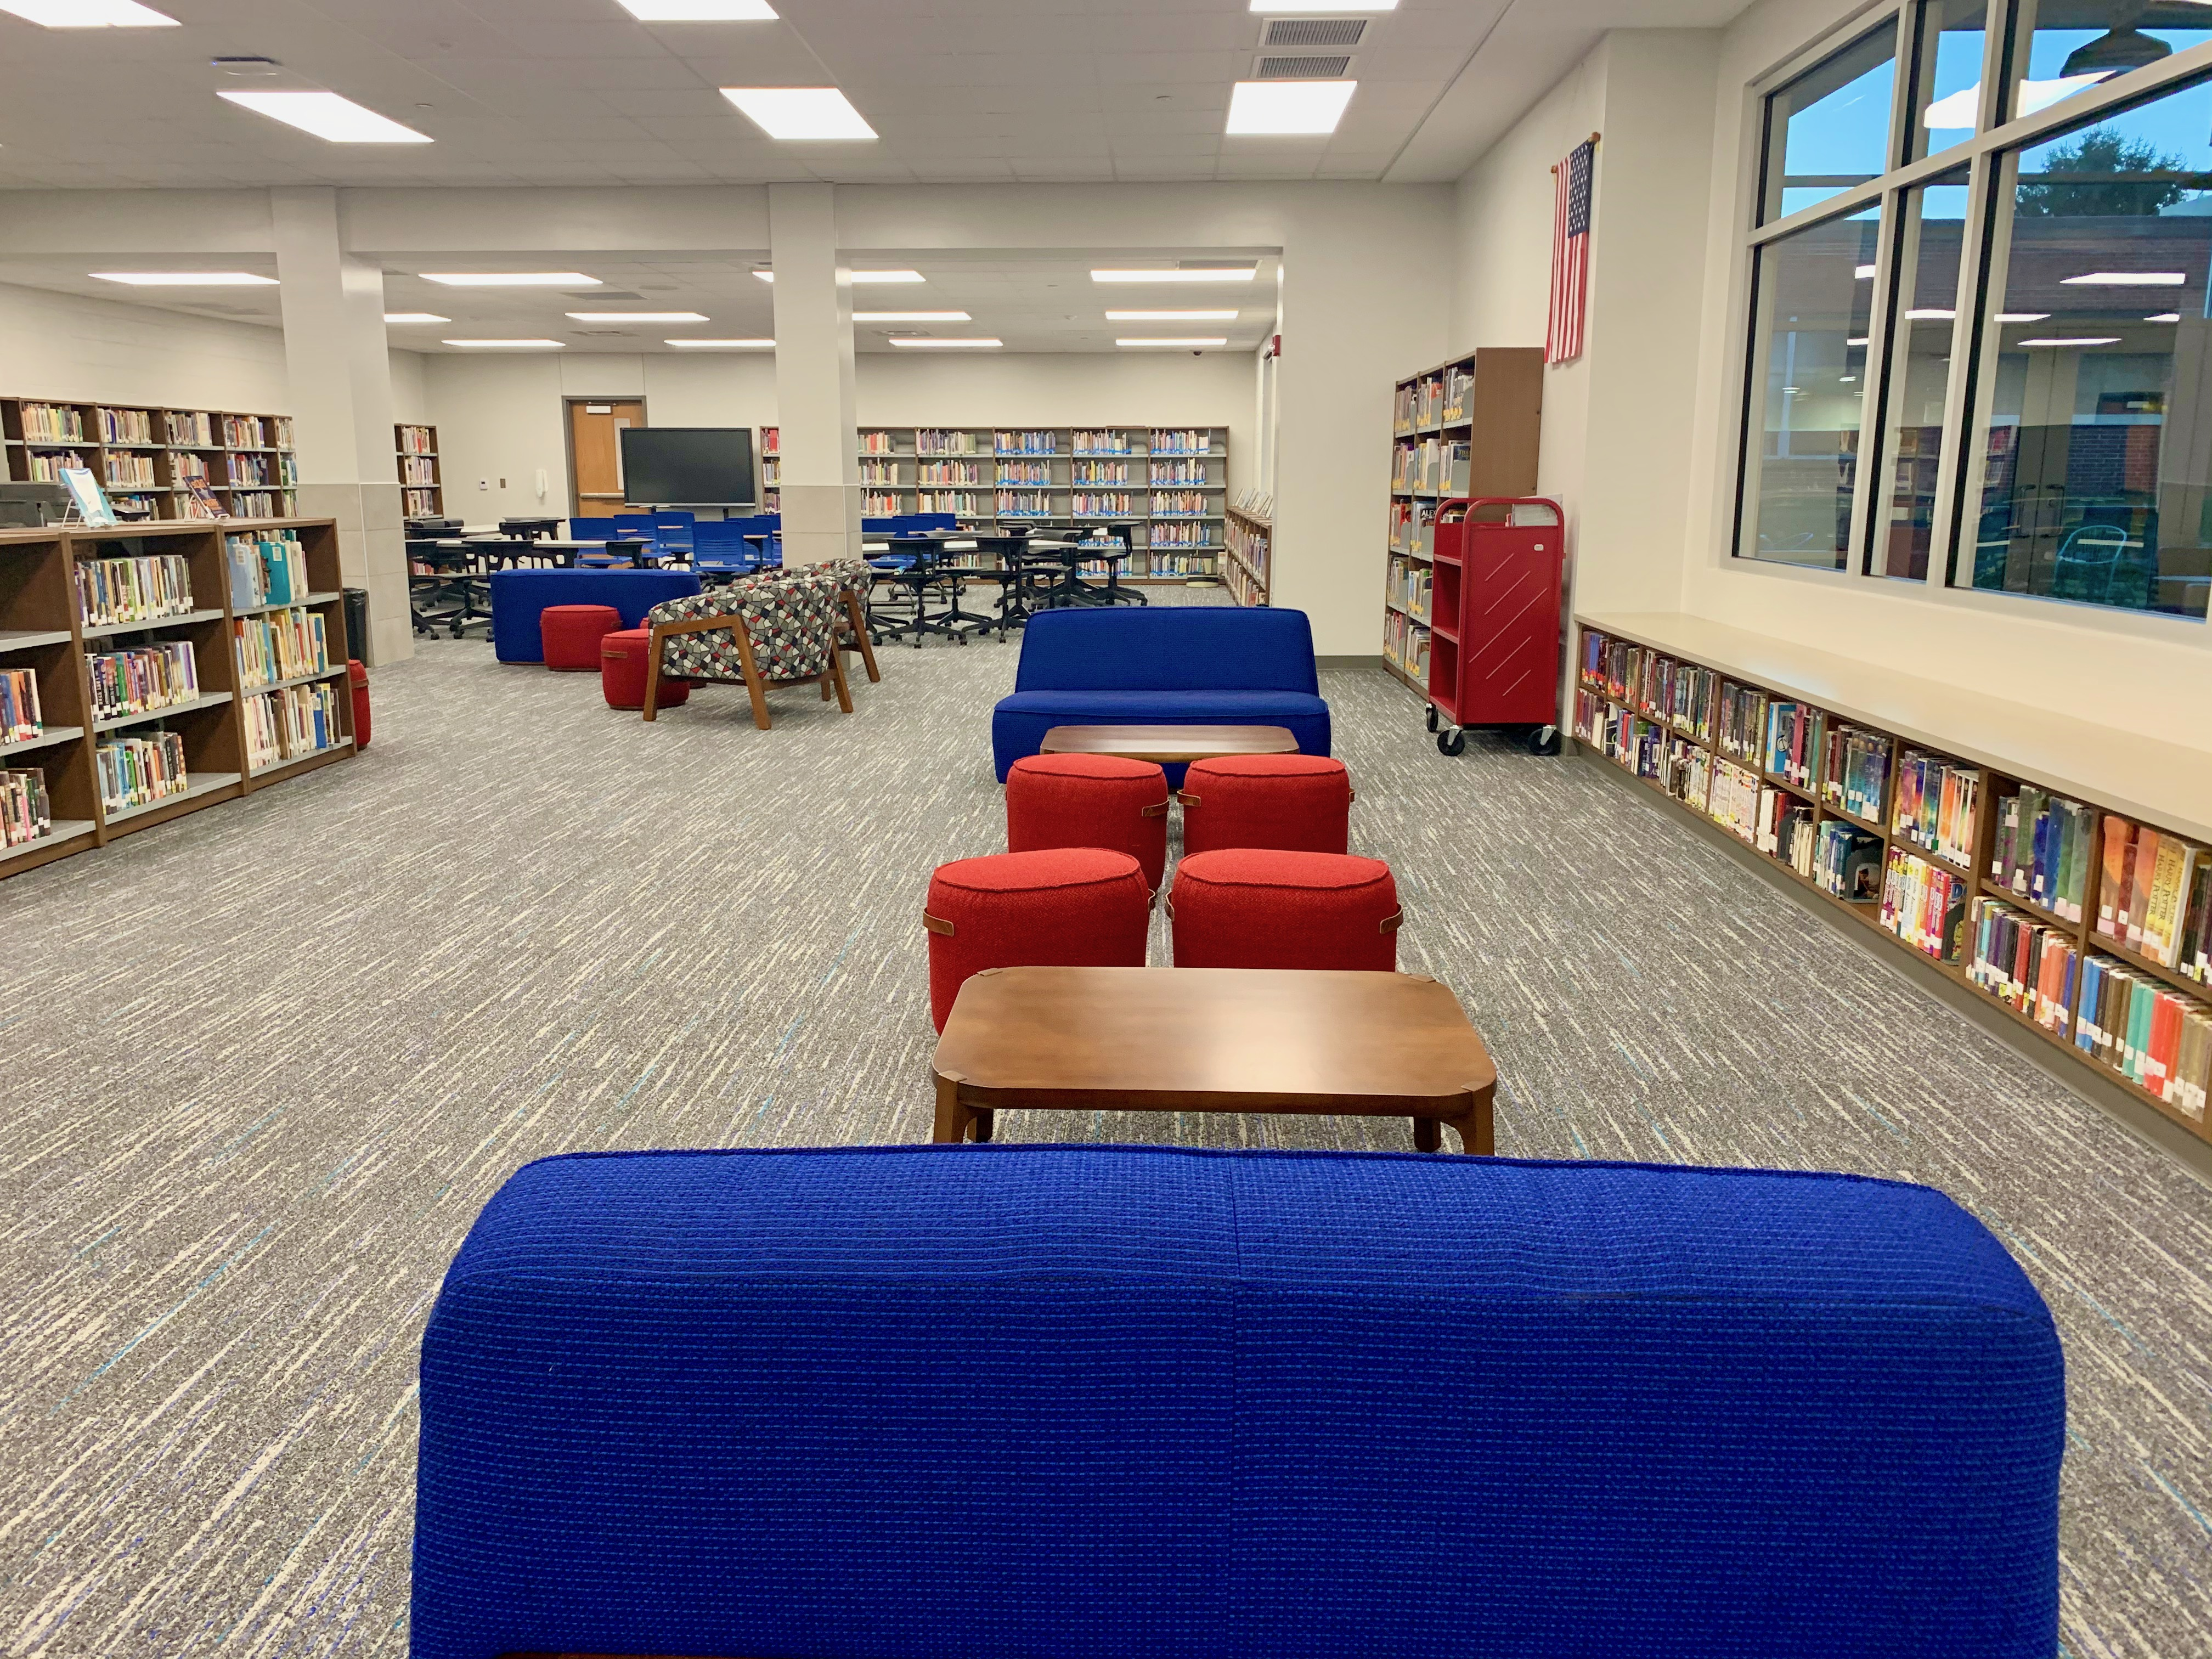 The newly renovated Media Center includes plenty of books and reference materials, in addition to collaborative spaces, flexible seating and a bright and welcoming ambiance.